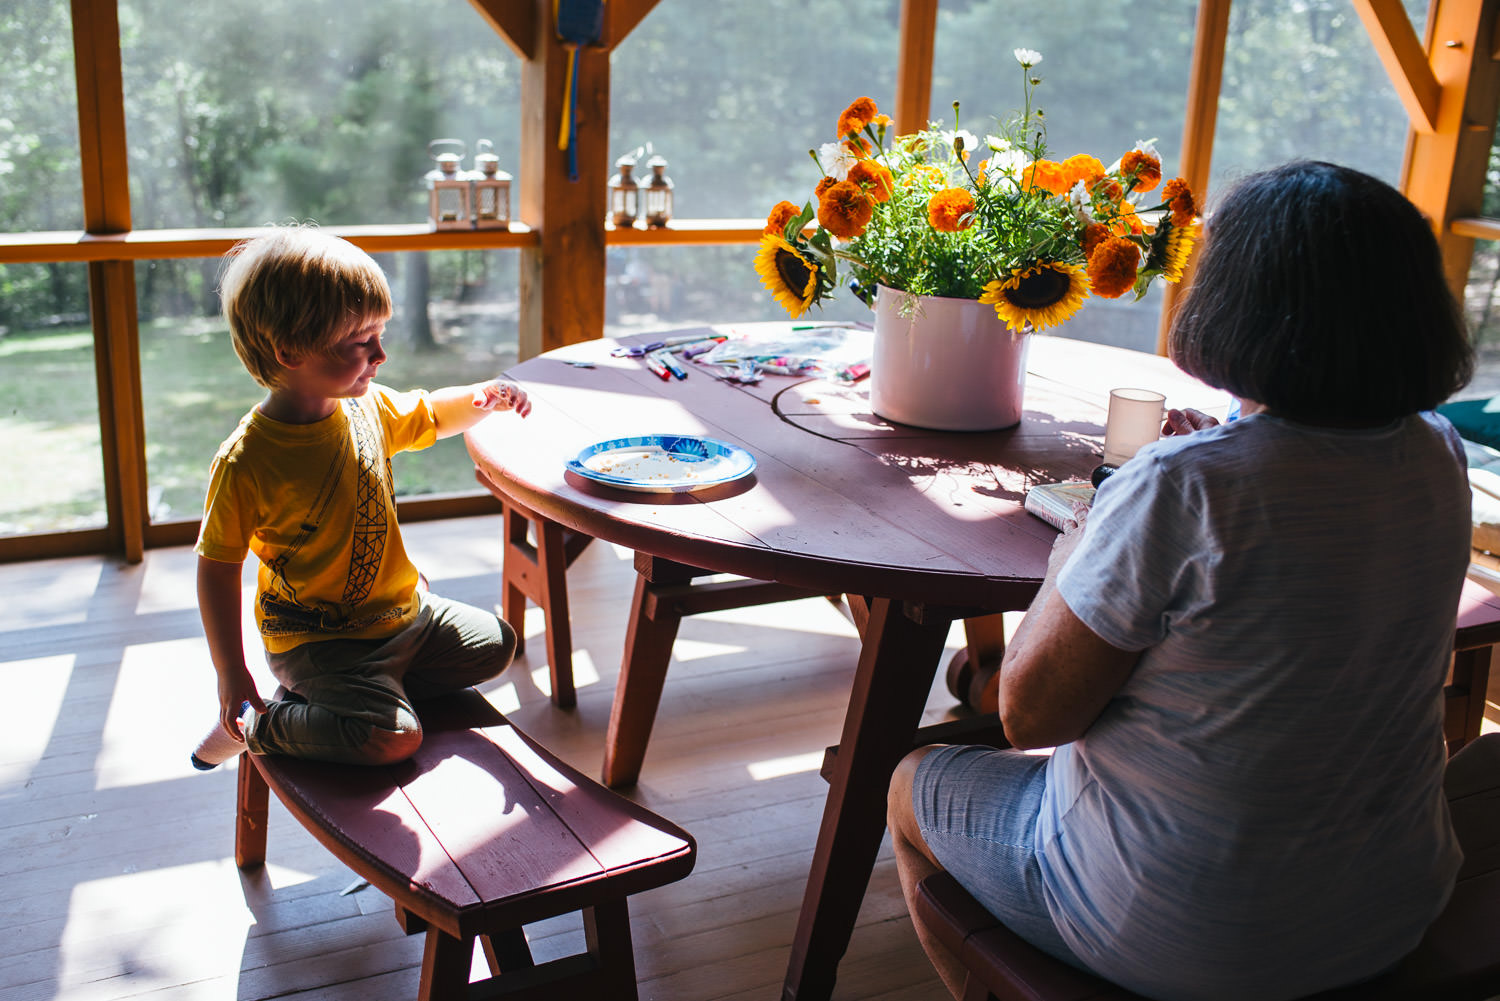 A little boy and his grandmother sit at a table with an arrangement of beautiful flowers.